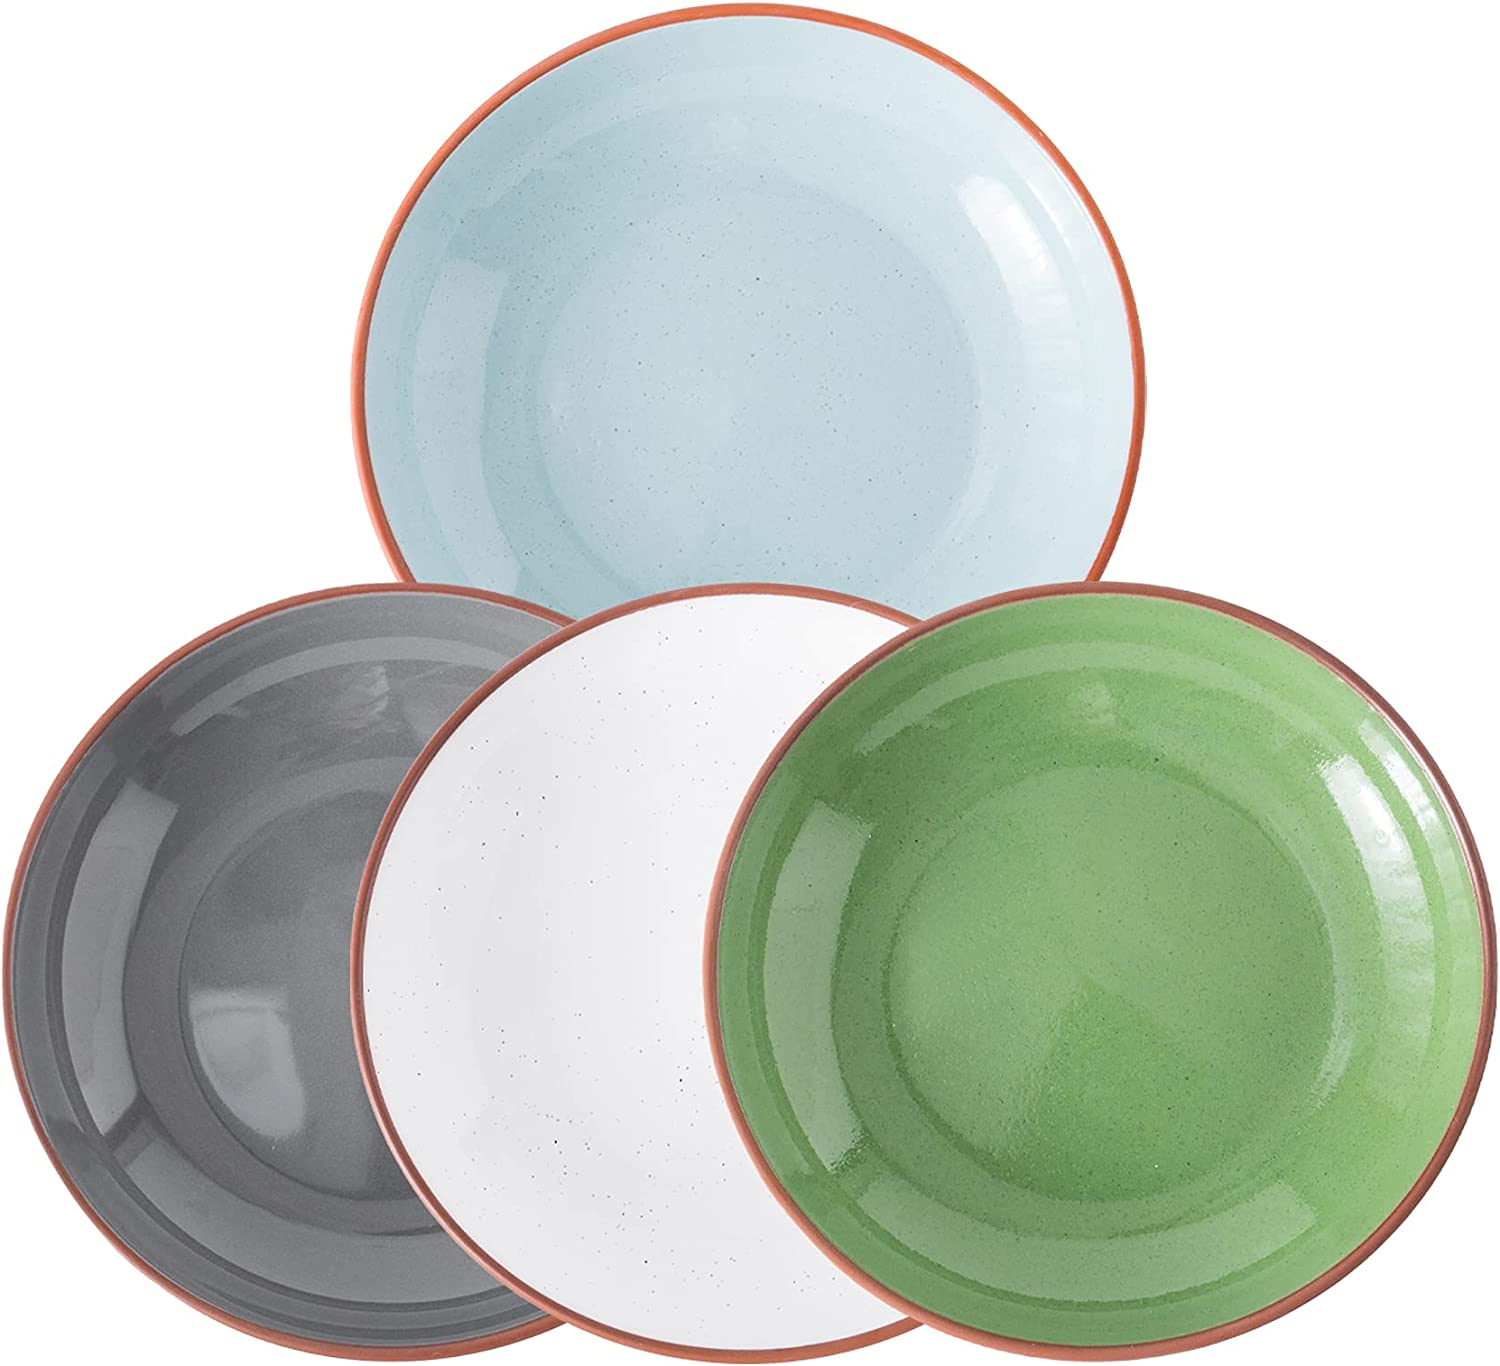 Amoi Large Pasta Bowl Set Of 4 Limited time trial price Ceramic inch Plates 3 Denver Mall 9.25 Dinner